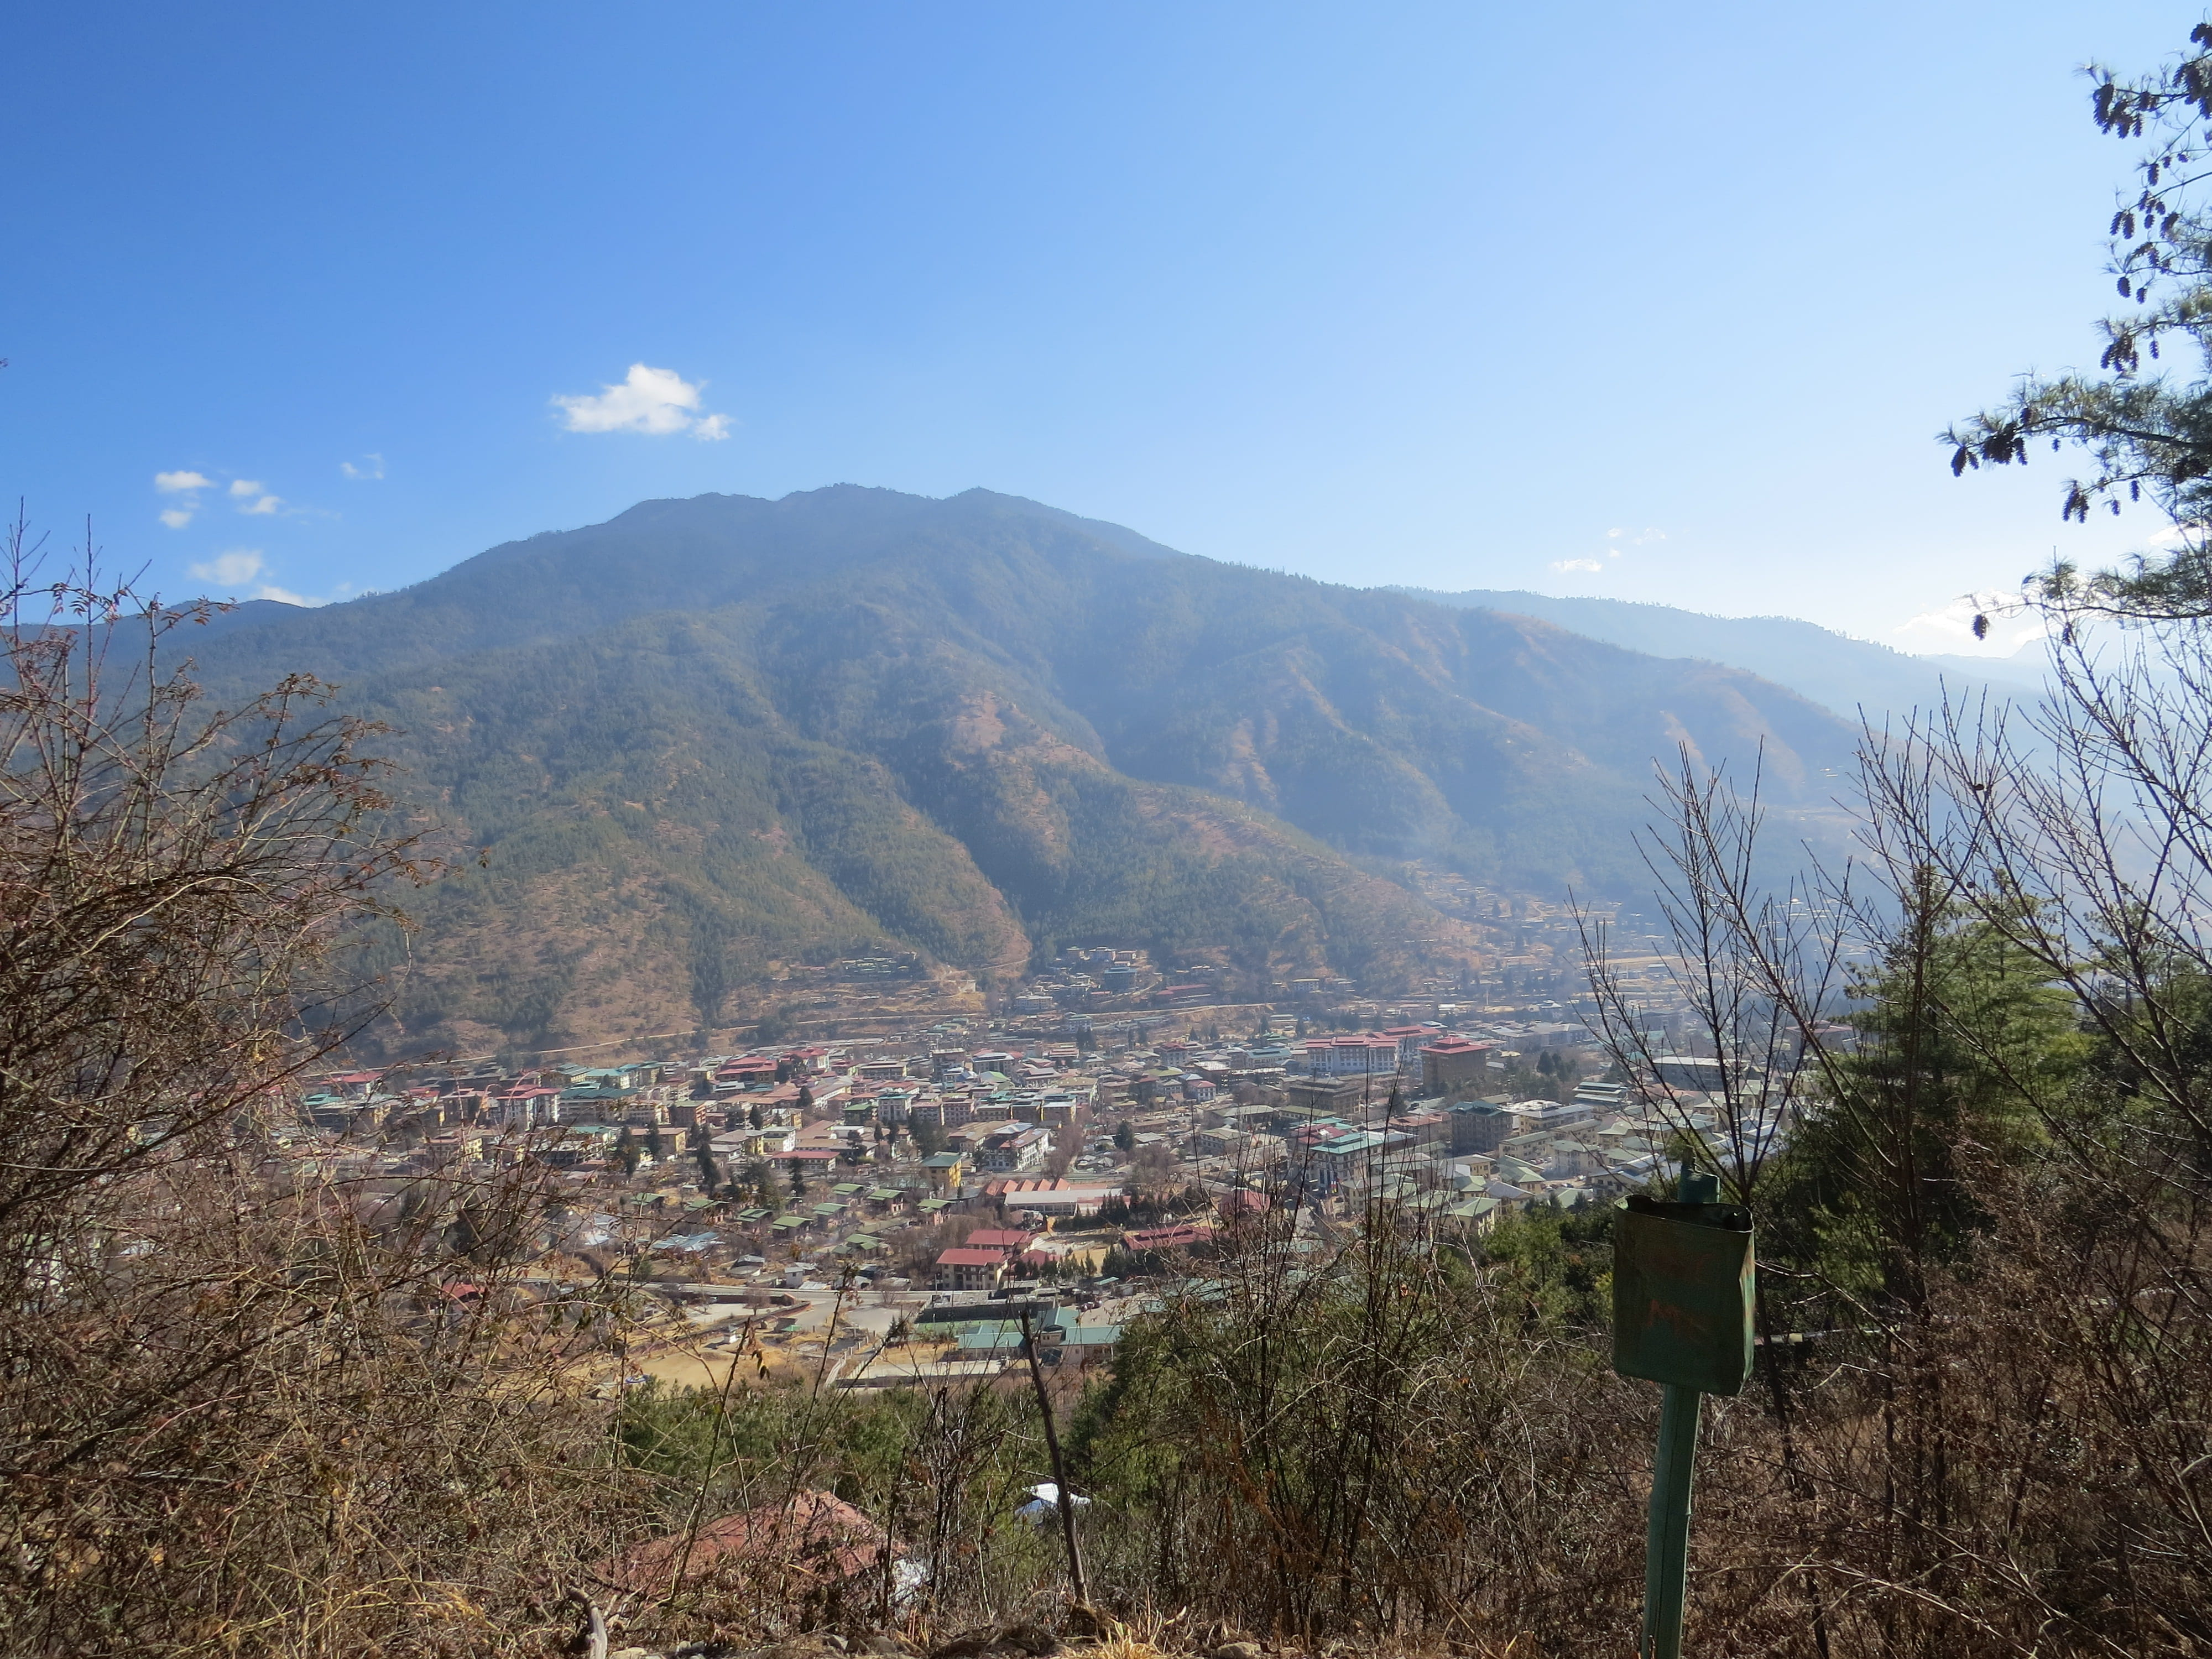 View of Thimphu, Bhutan's capital, from above with mountains and blue sky in background